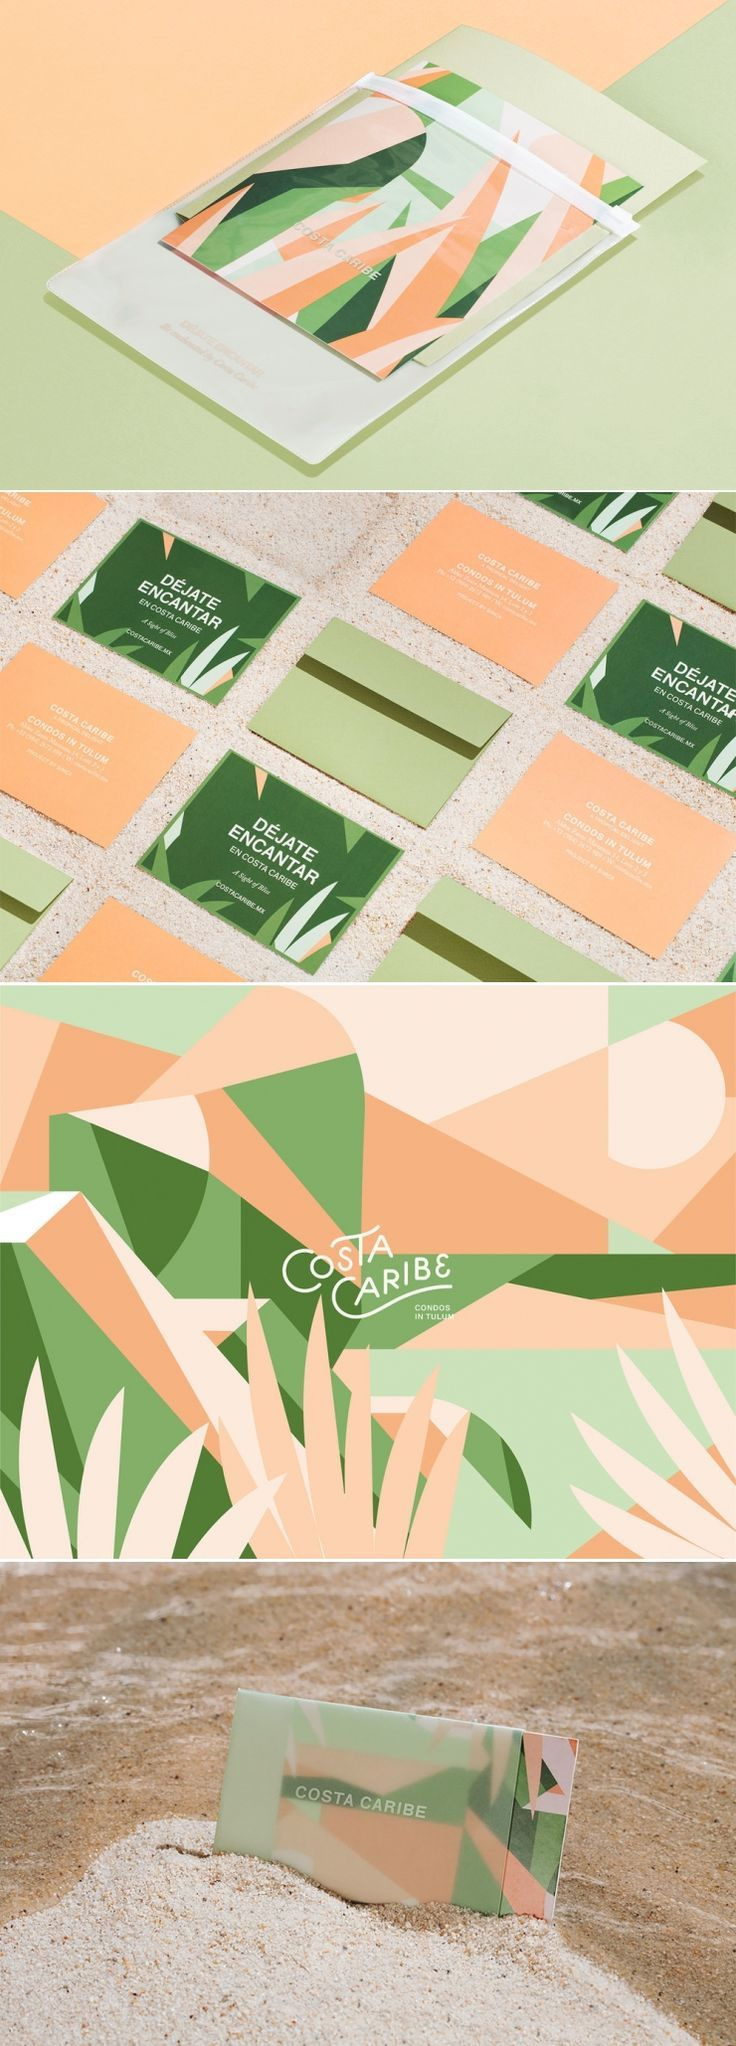 Let Costa Caribe's Graphic Branding Transport You To The Tropics | Dieline